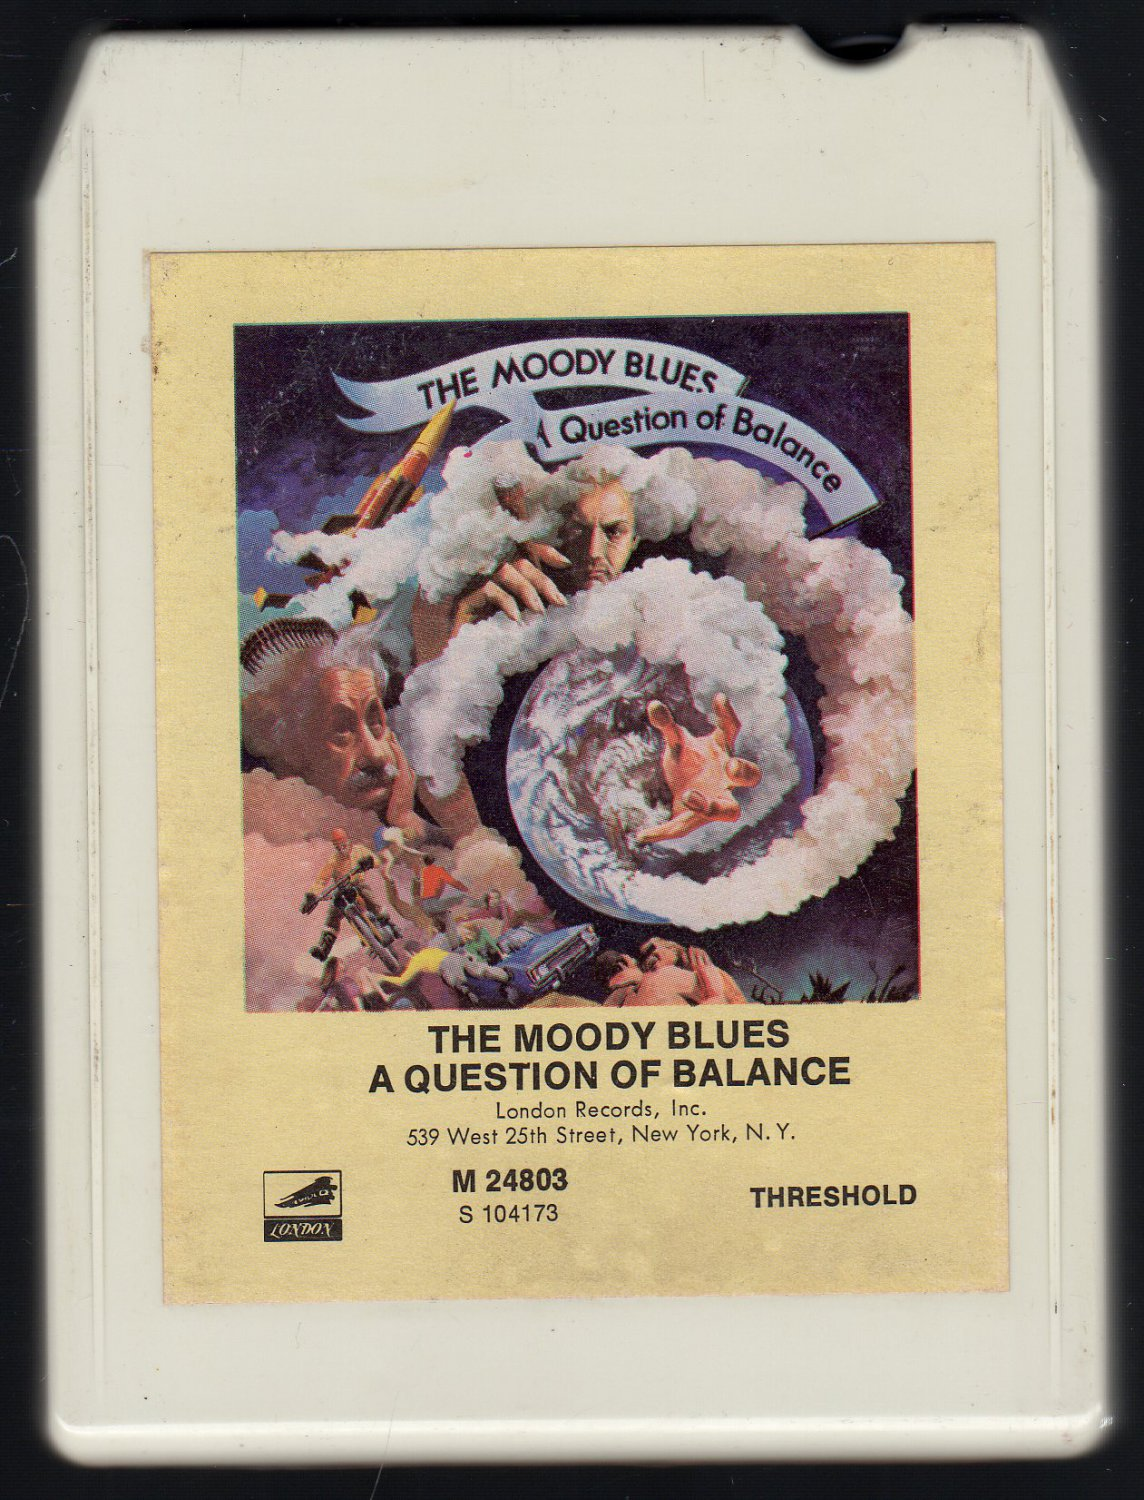 The Moody Blues - A Question Of Balance 8-track tape